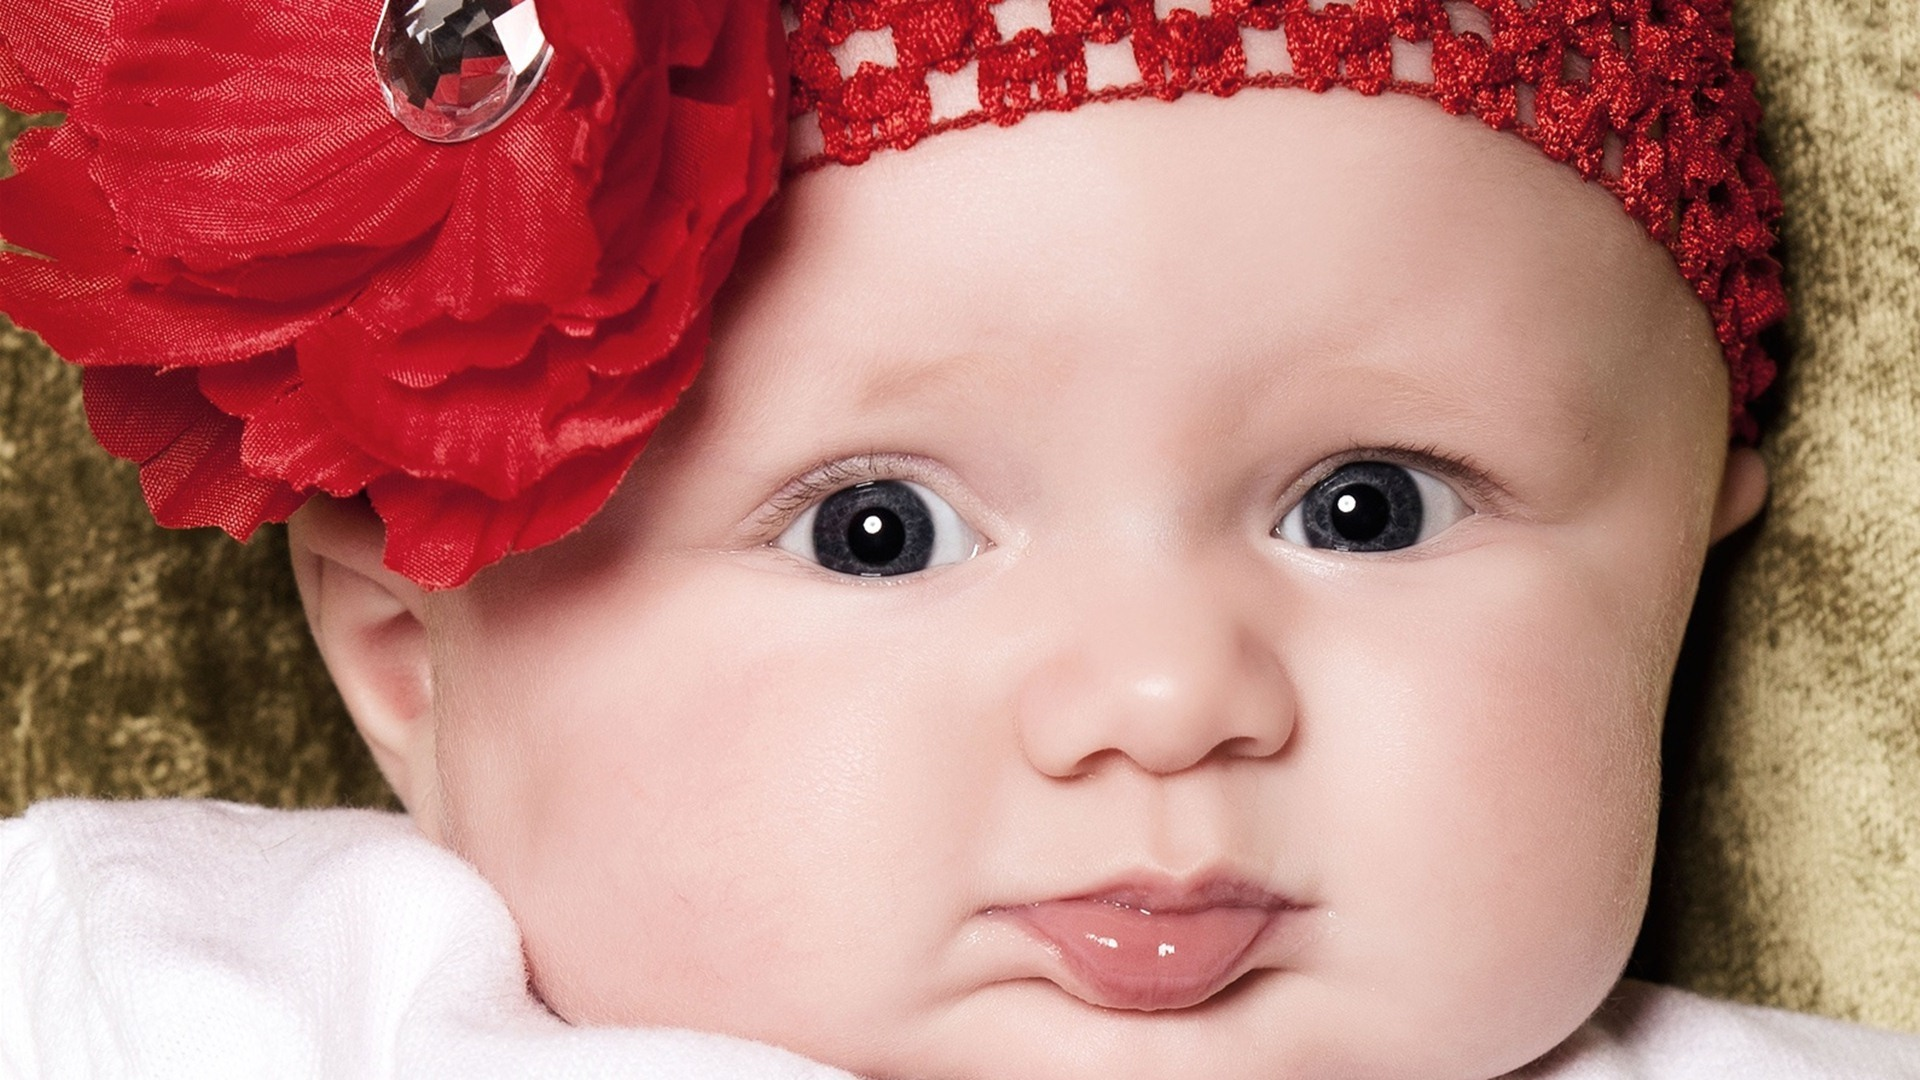 wallpaper hd cute and lovely baby pictures free download - HD 1920×1080